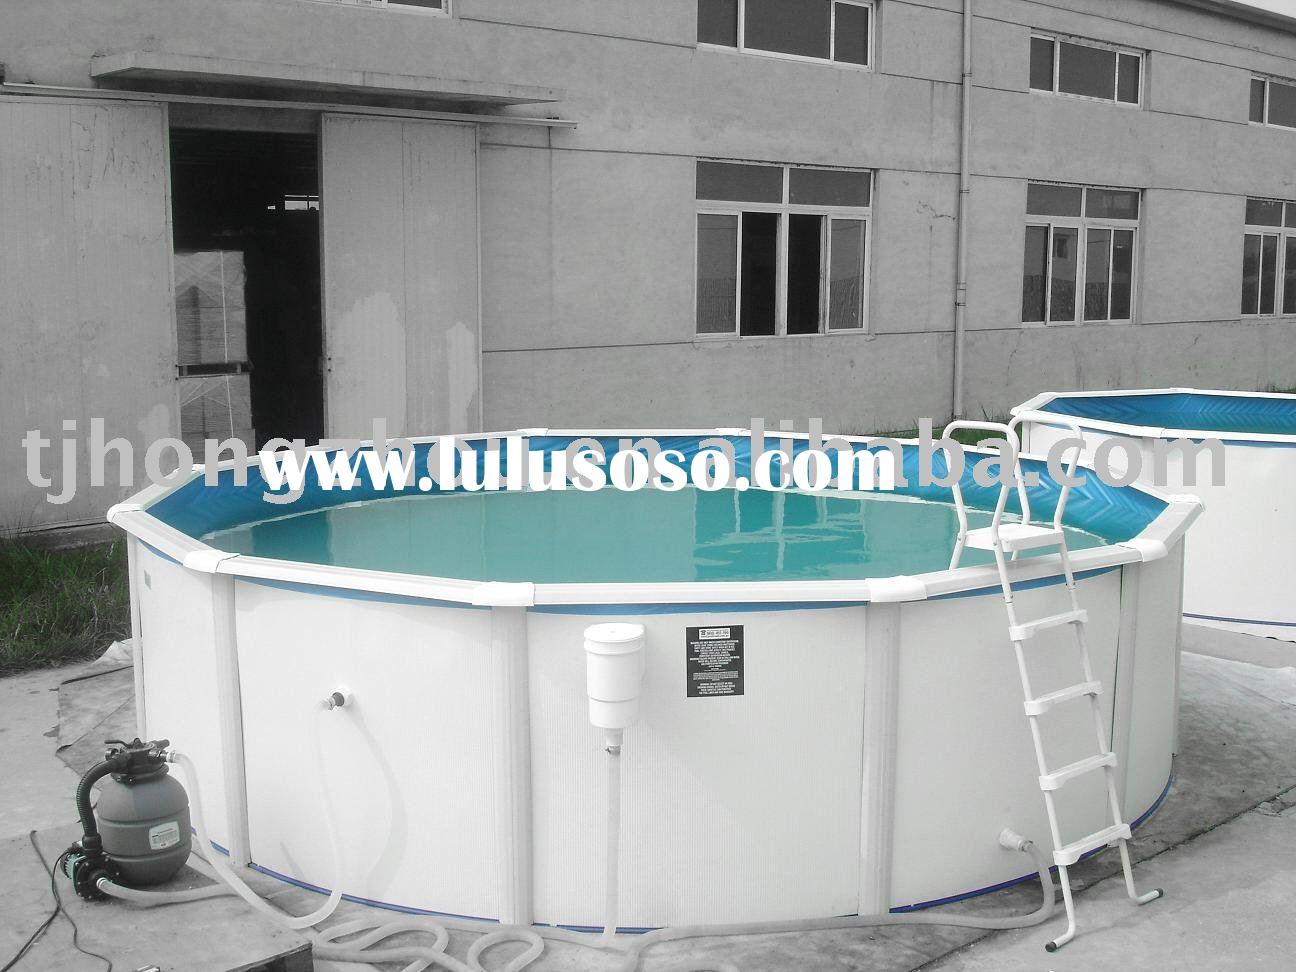 Acylic above ground swimming pool jcs ss1 for sale price china manufacturer supplier 934061 for Steel above ground swimming pools